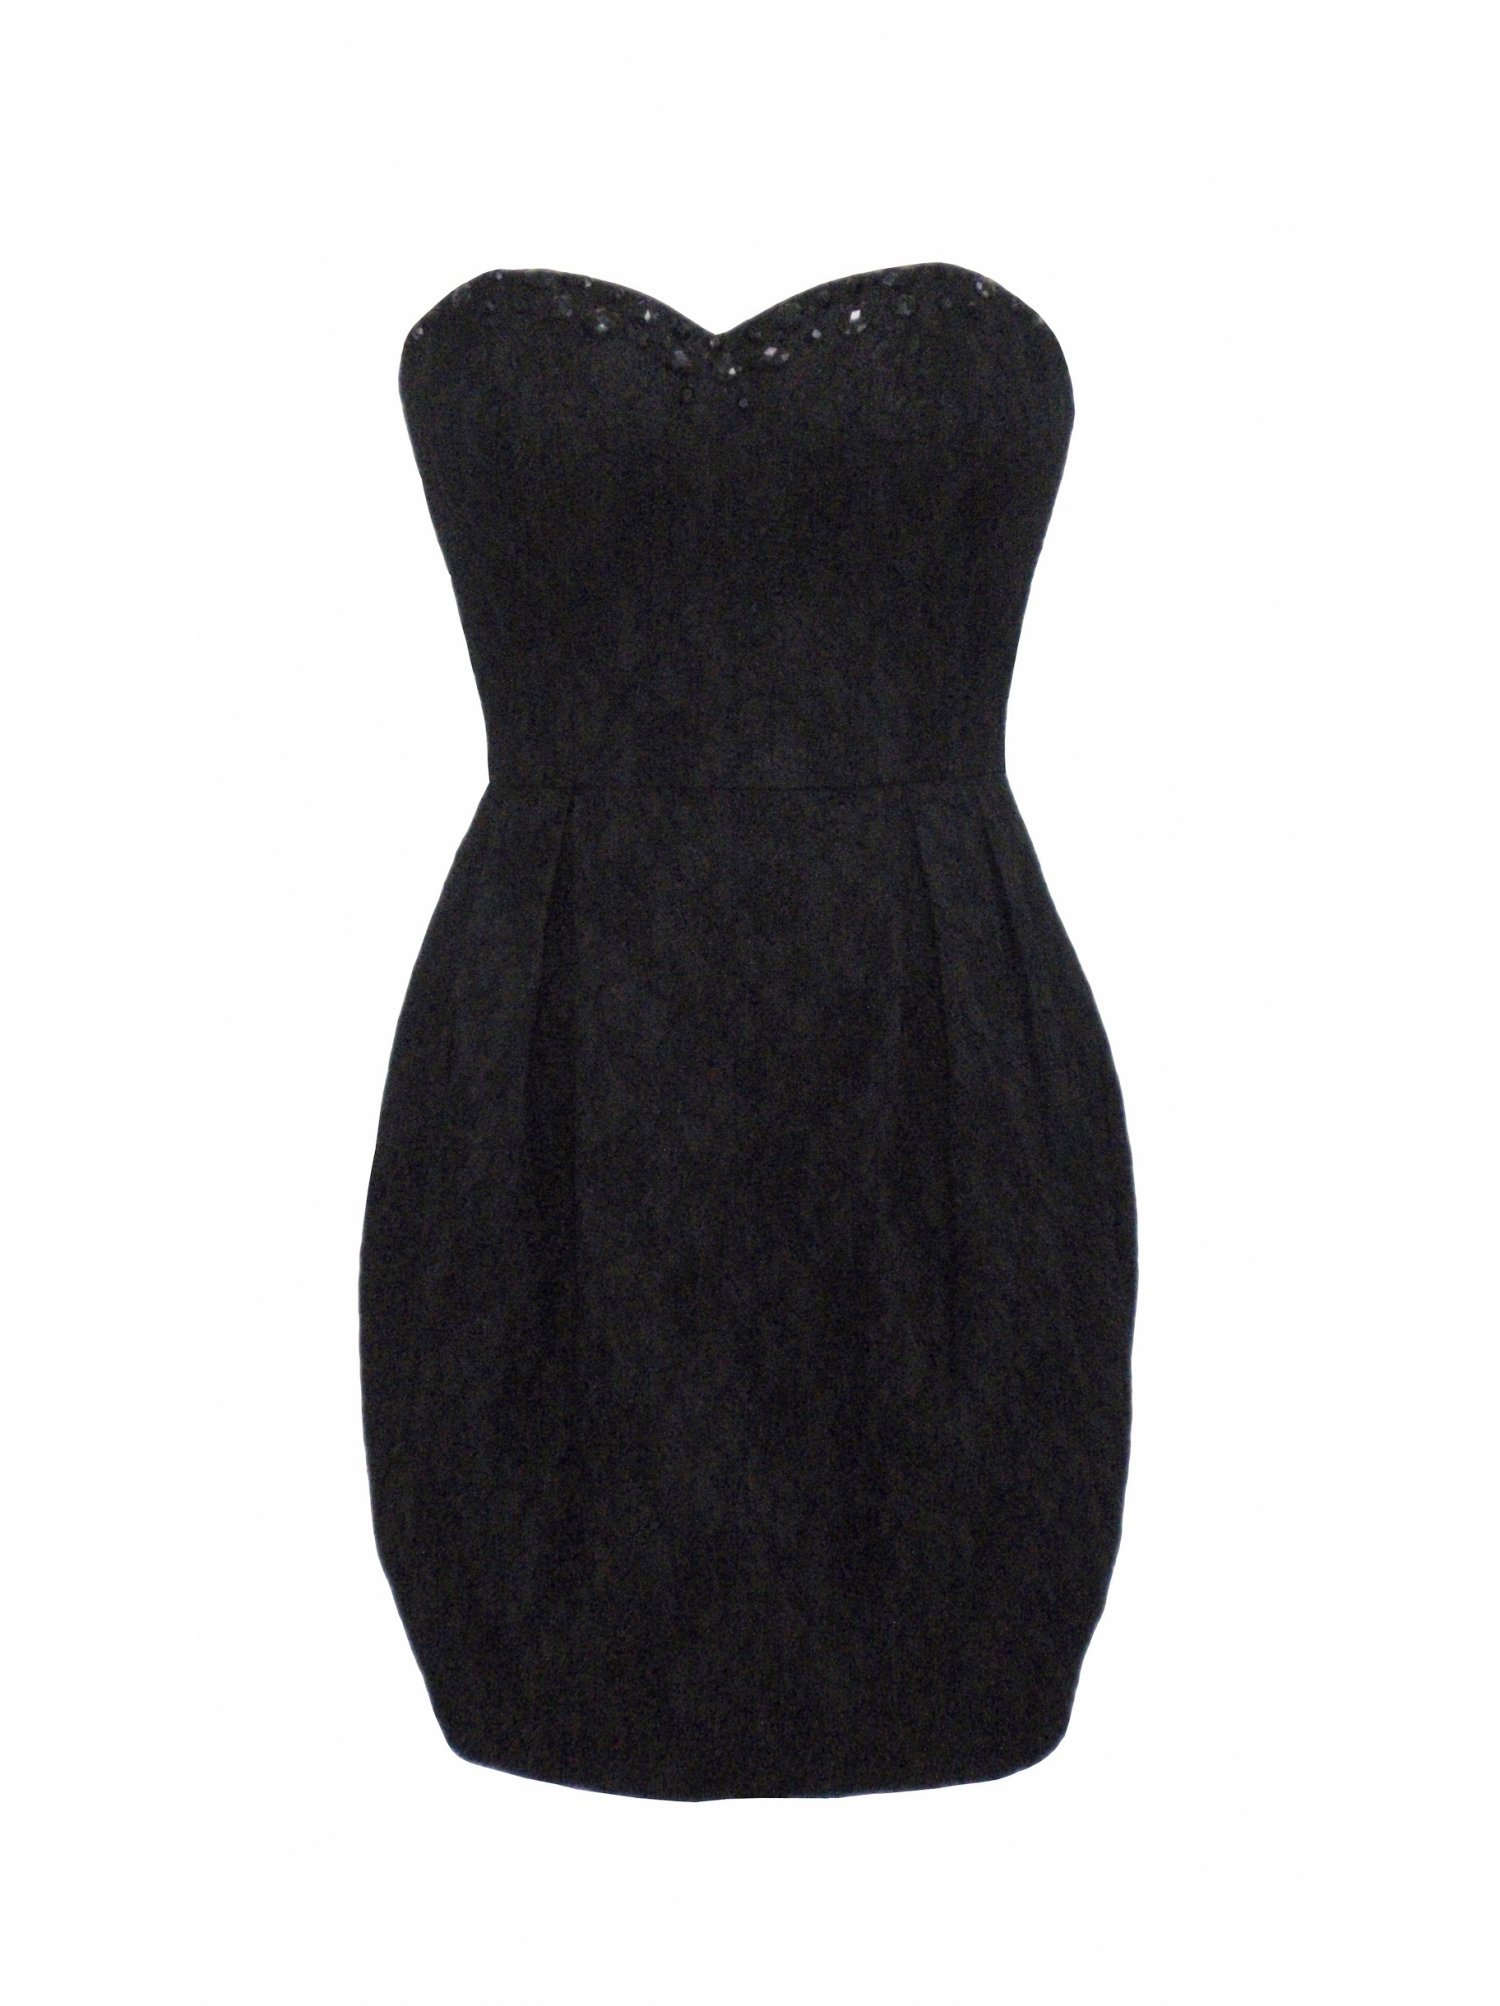 Little Black Dress - Black Strapless Dress with Lace | UsTrendy